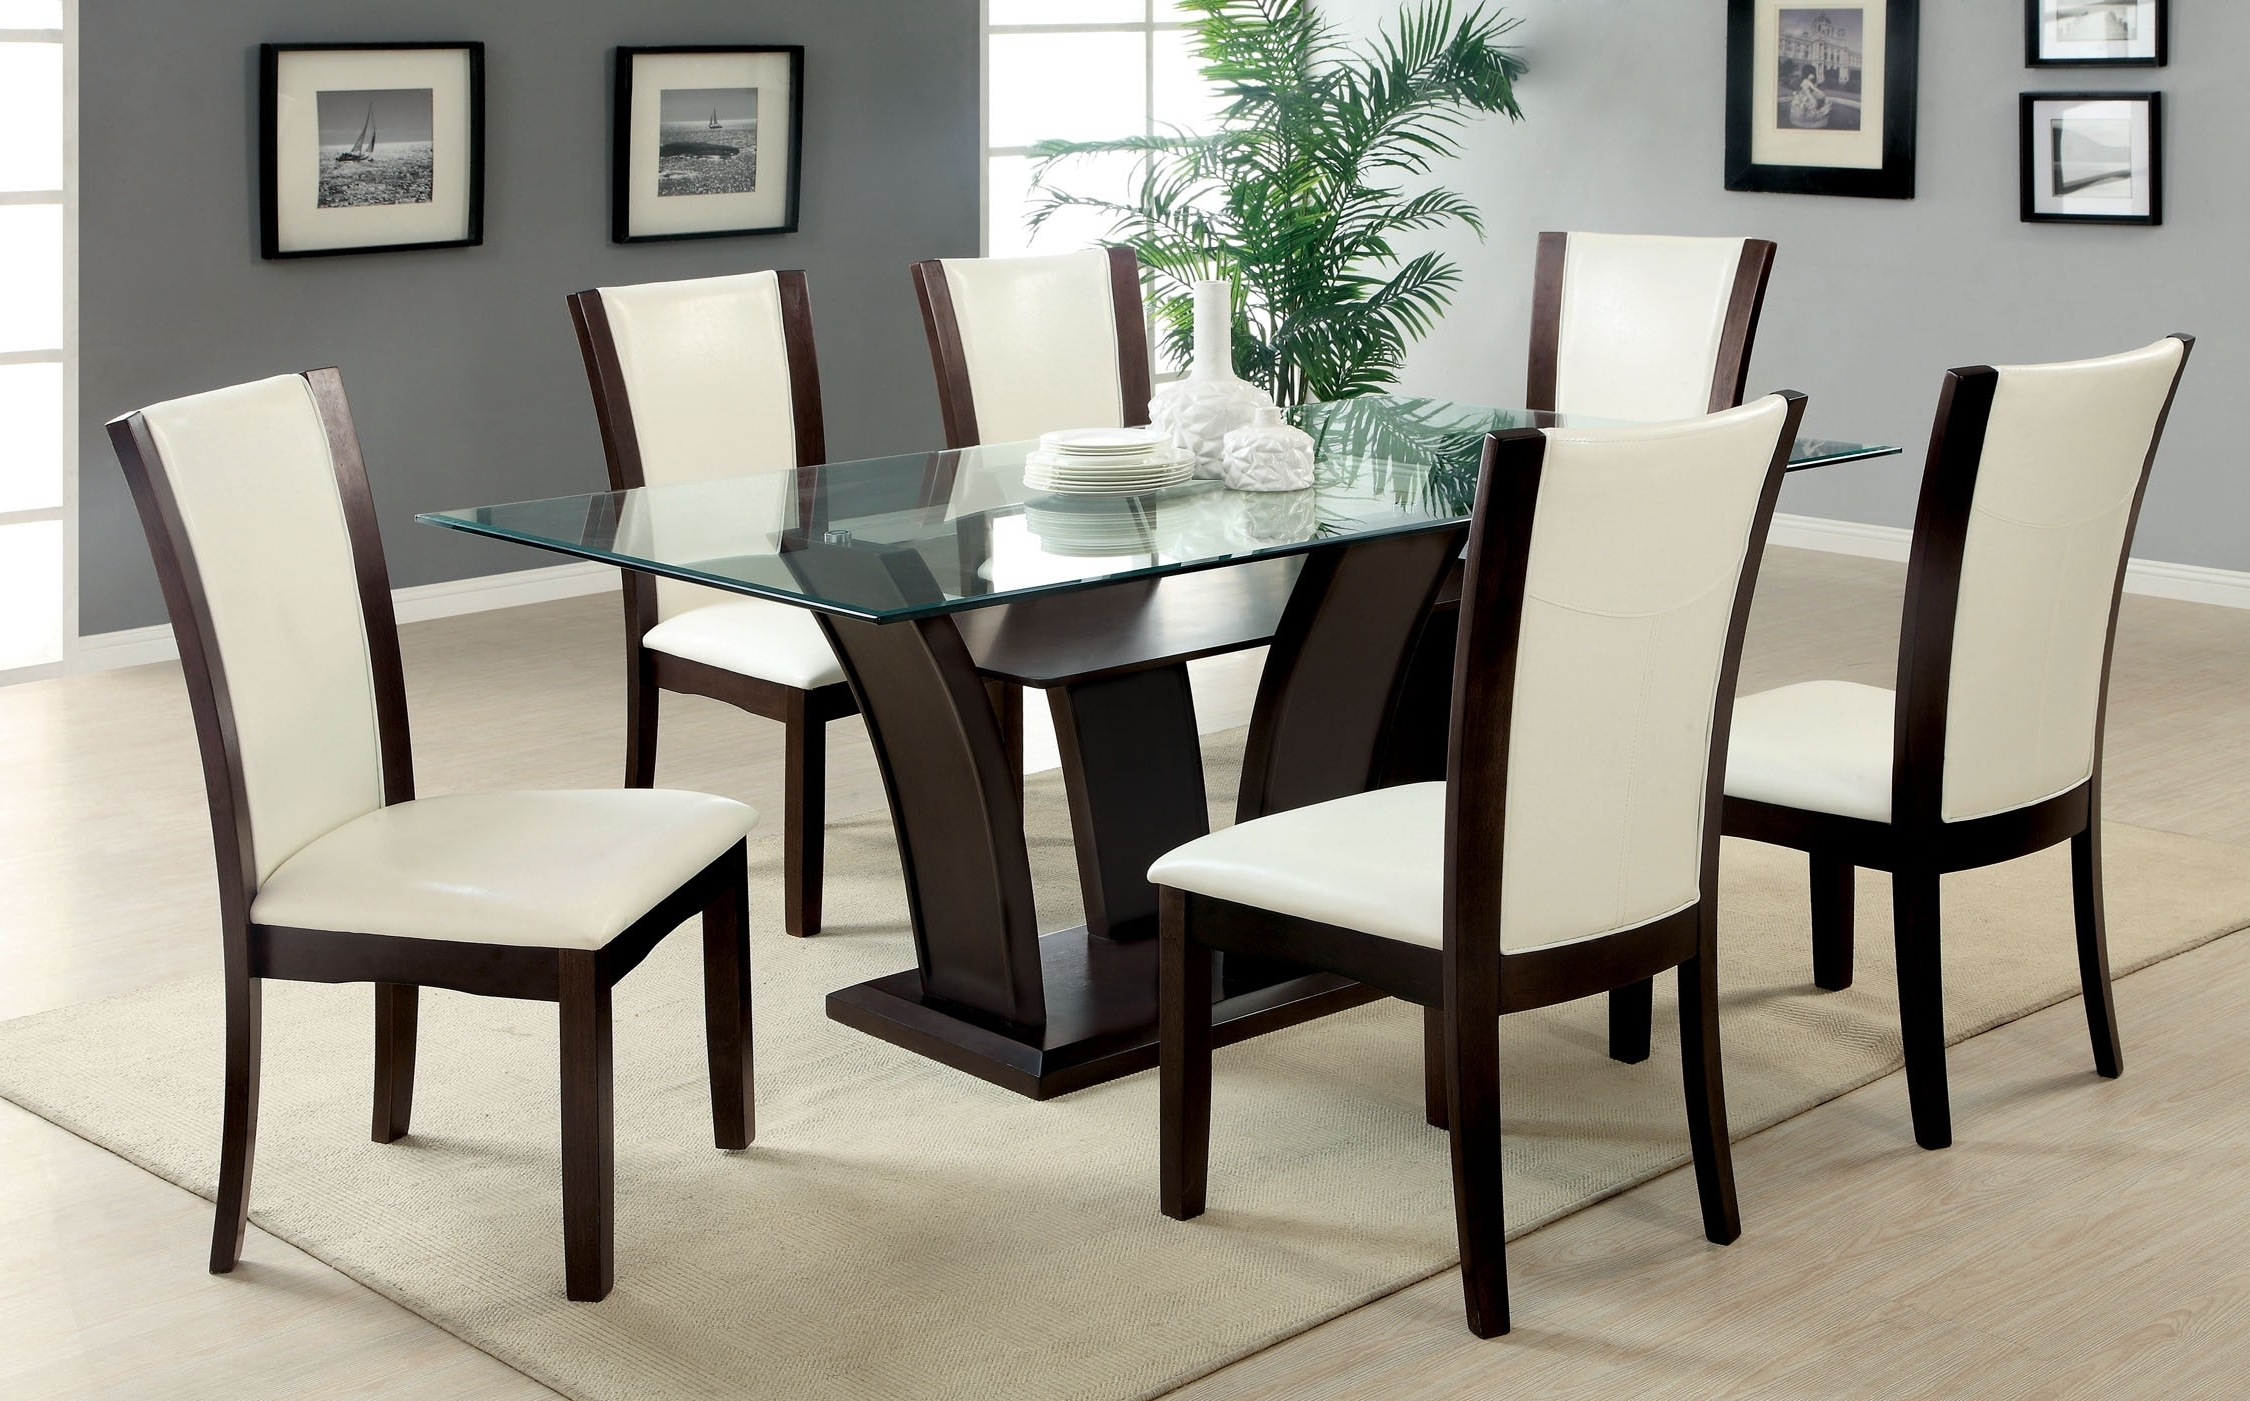 Latest Dining Room Glass Tables Sets With Regard To 6 Seater Glass Dining Table Sets • Table Setting Ideas (View 23 of 25)